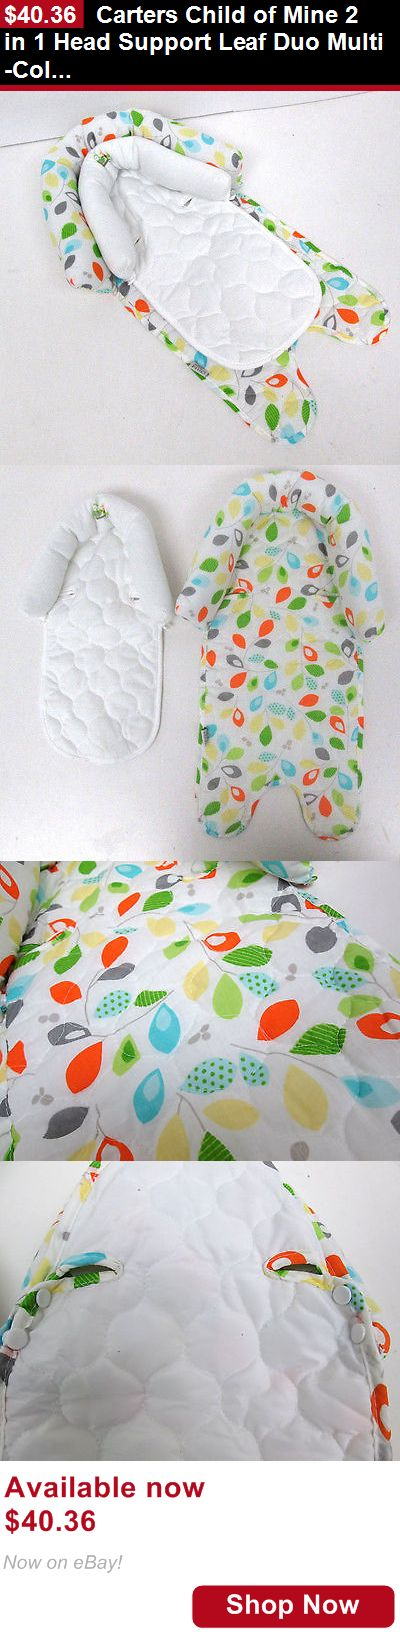 Infant Head Support: Carters Child Of Mine 2 In 1 Head Support Leaf Duo Multi-Color BUY IT NOW ONLY: $40.36